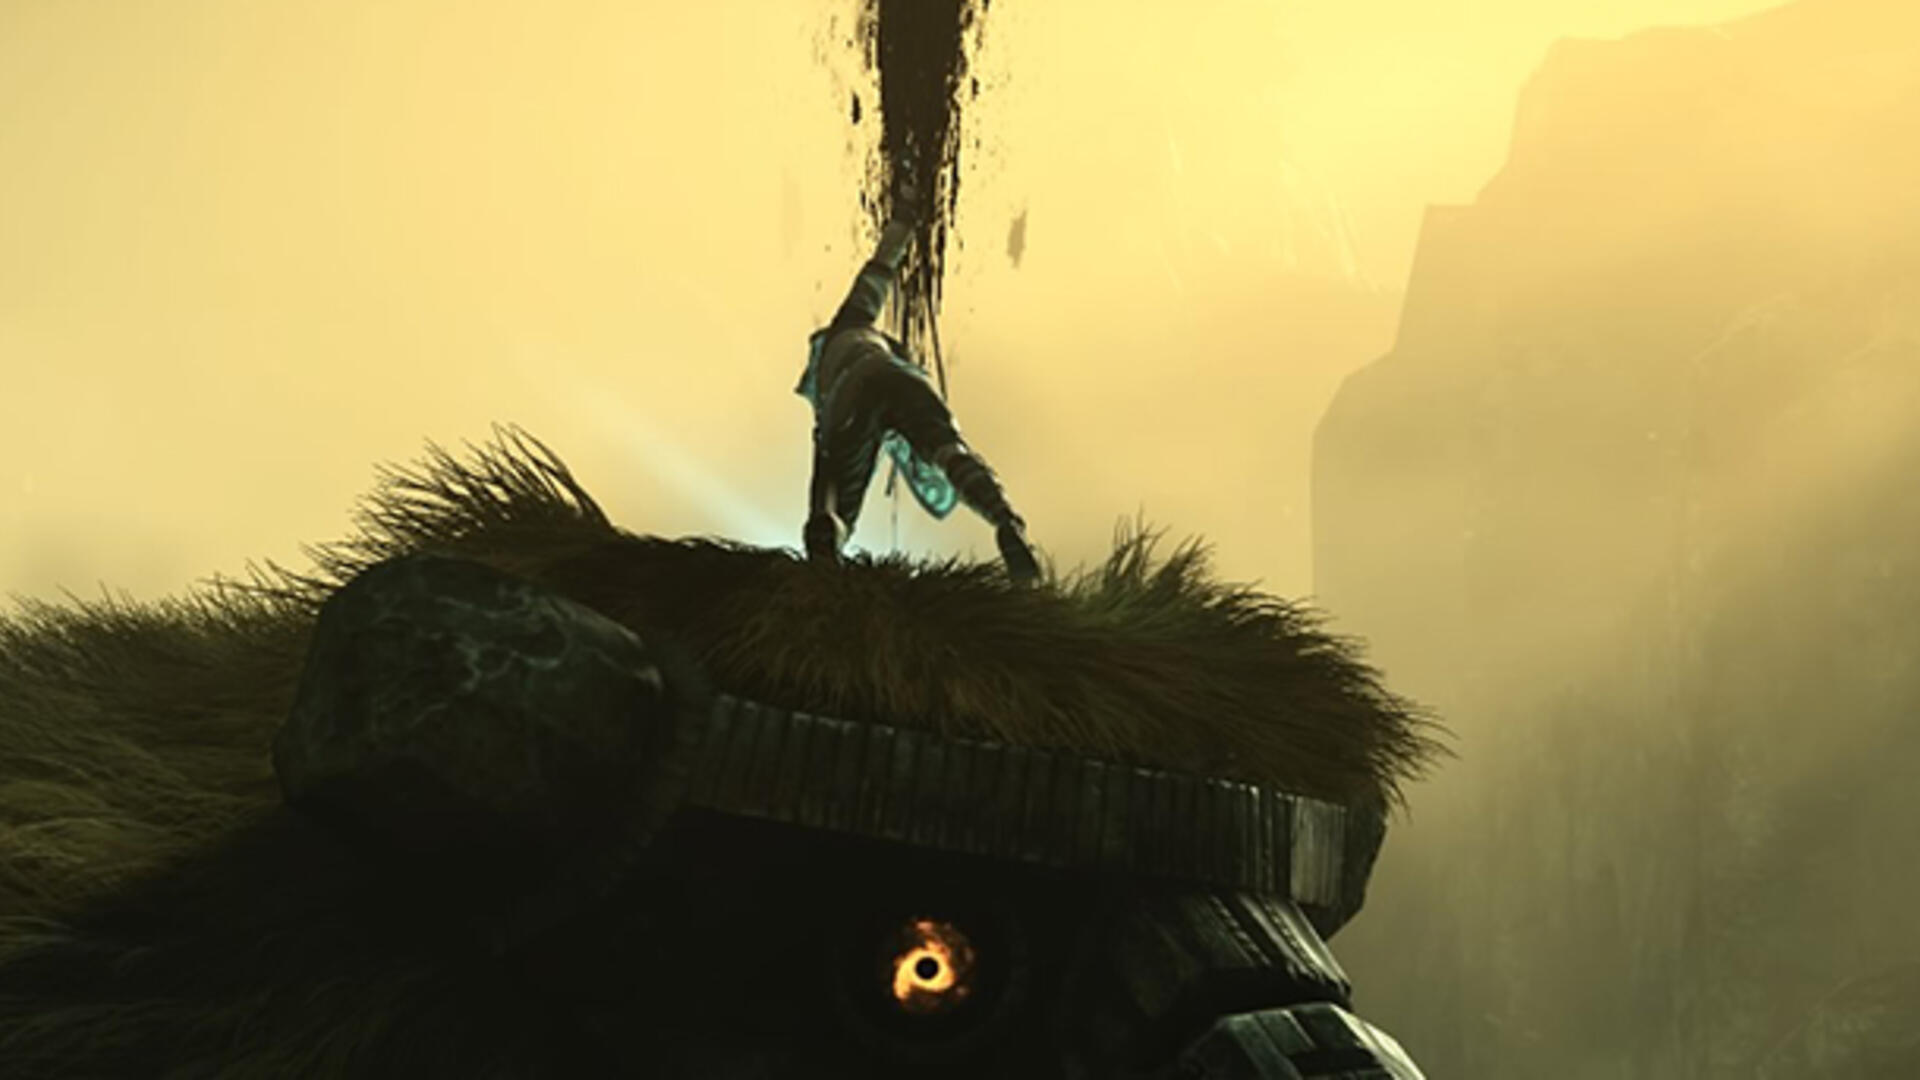 Shadow of the Colossus' Remake on PS4 Loses the Magic in its Quest for Technical Brilliance